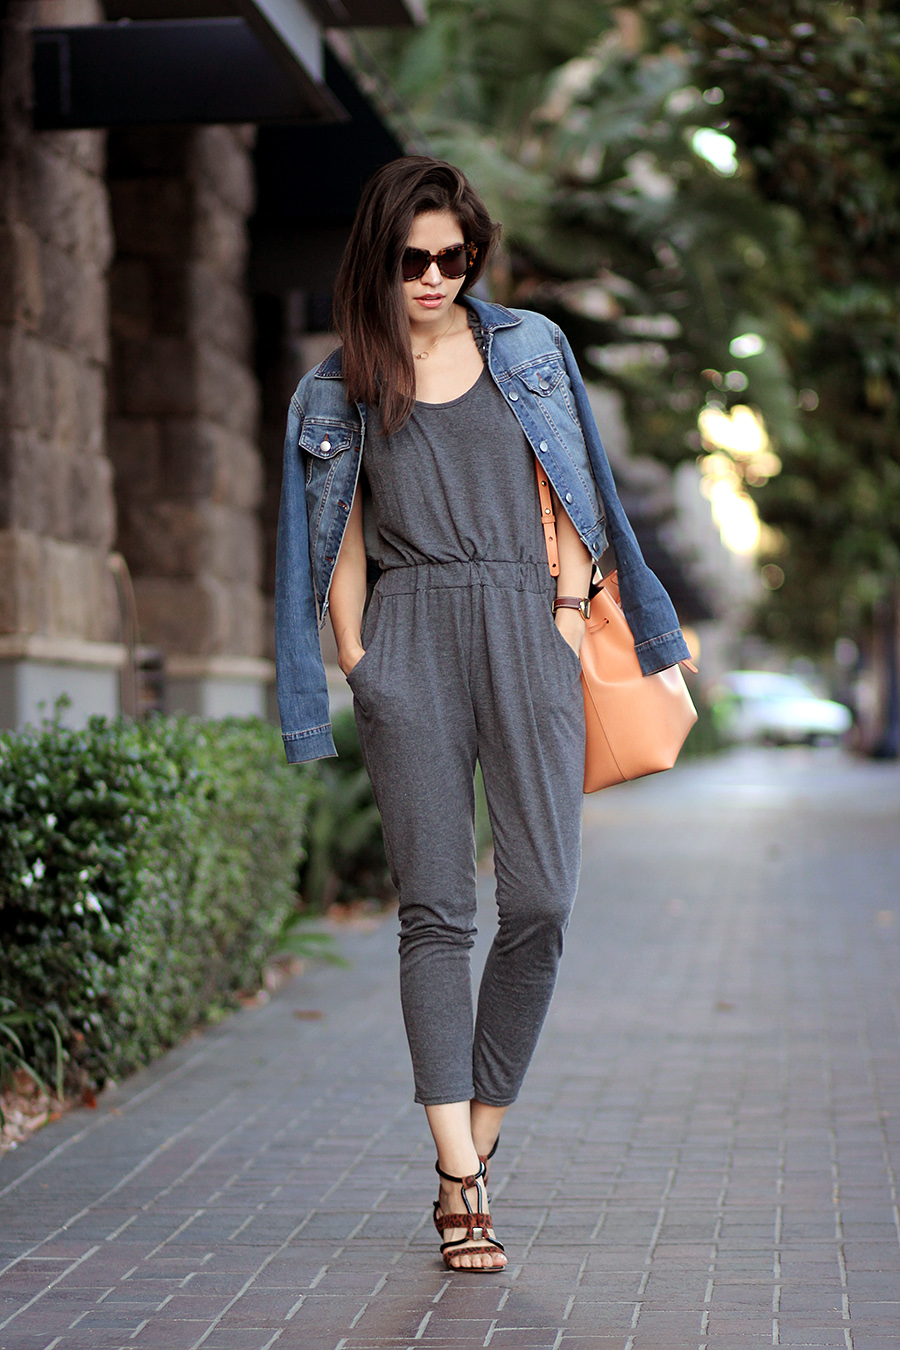 02-andrea-sandals-sheinside-jumpsuit-denim-jacket-mansur-gavriel-bucket-bag-cammello-ootd-casual-karen-walker-number-one.jpg